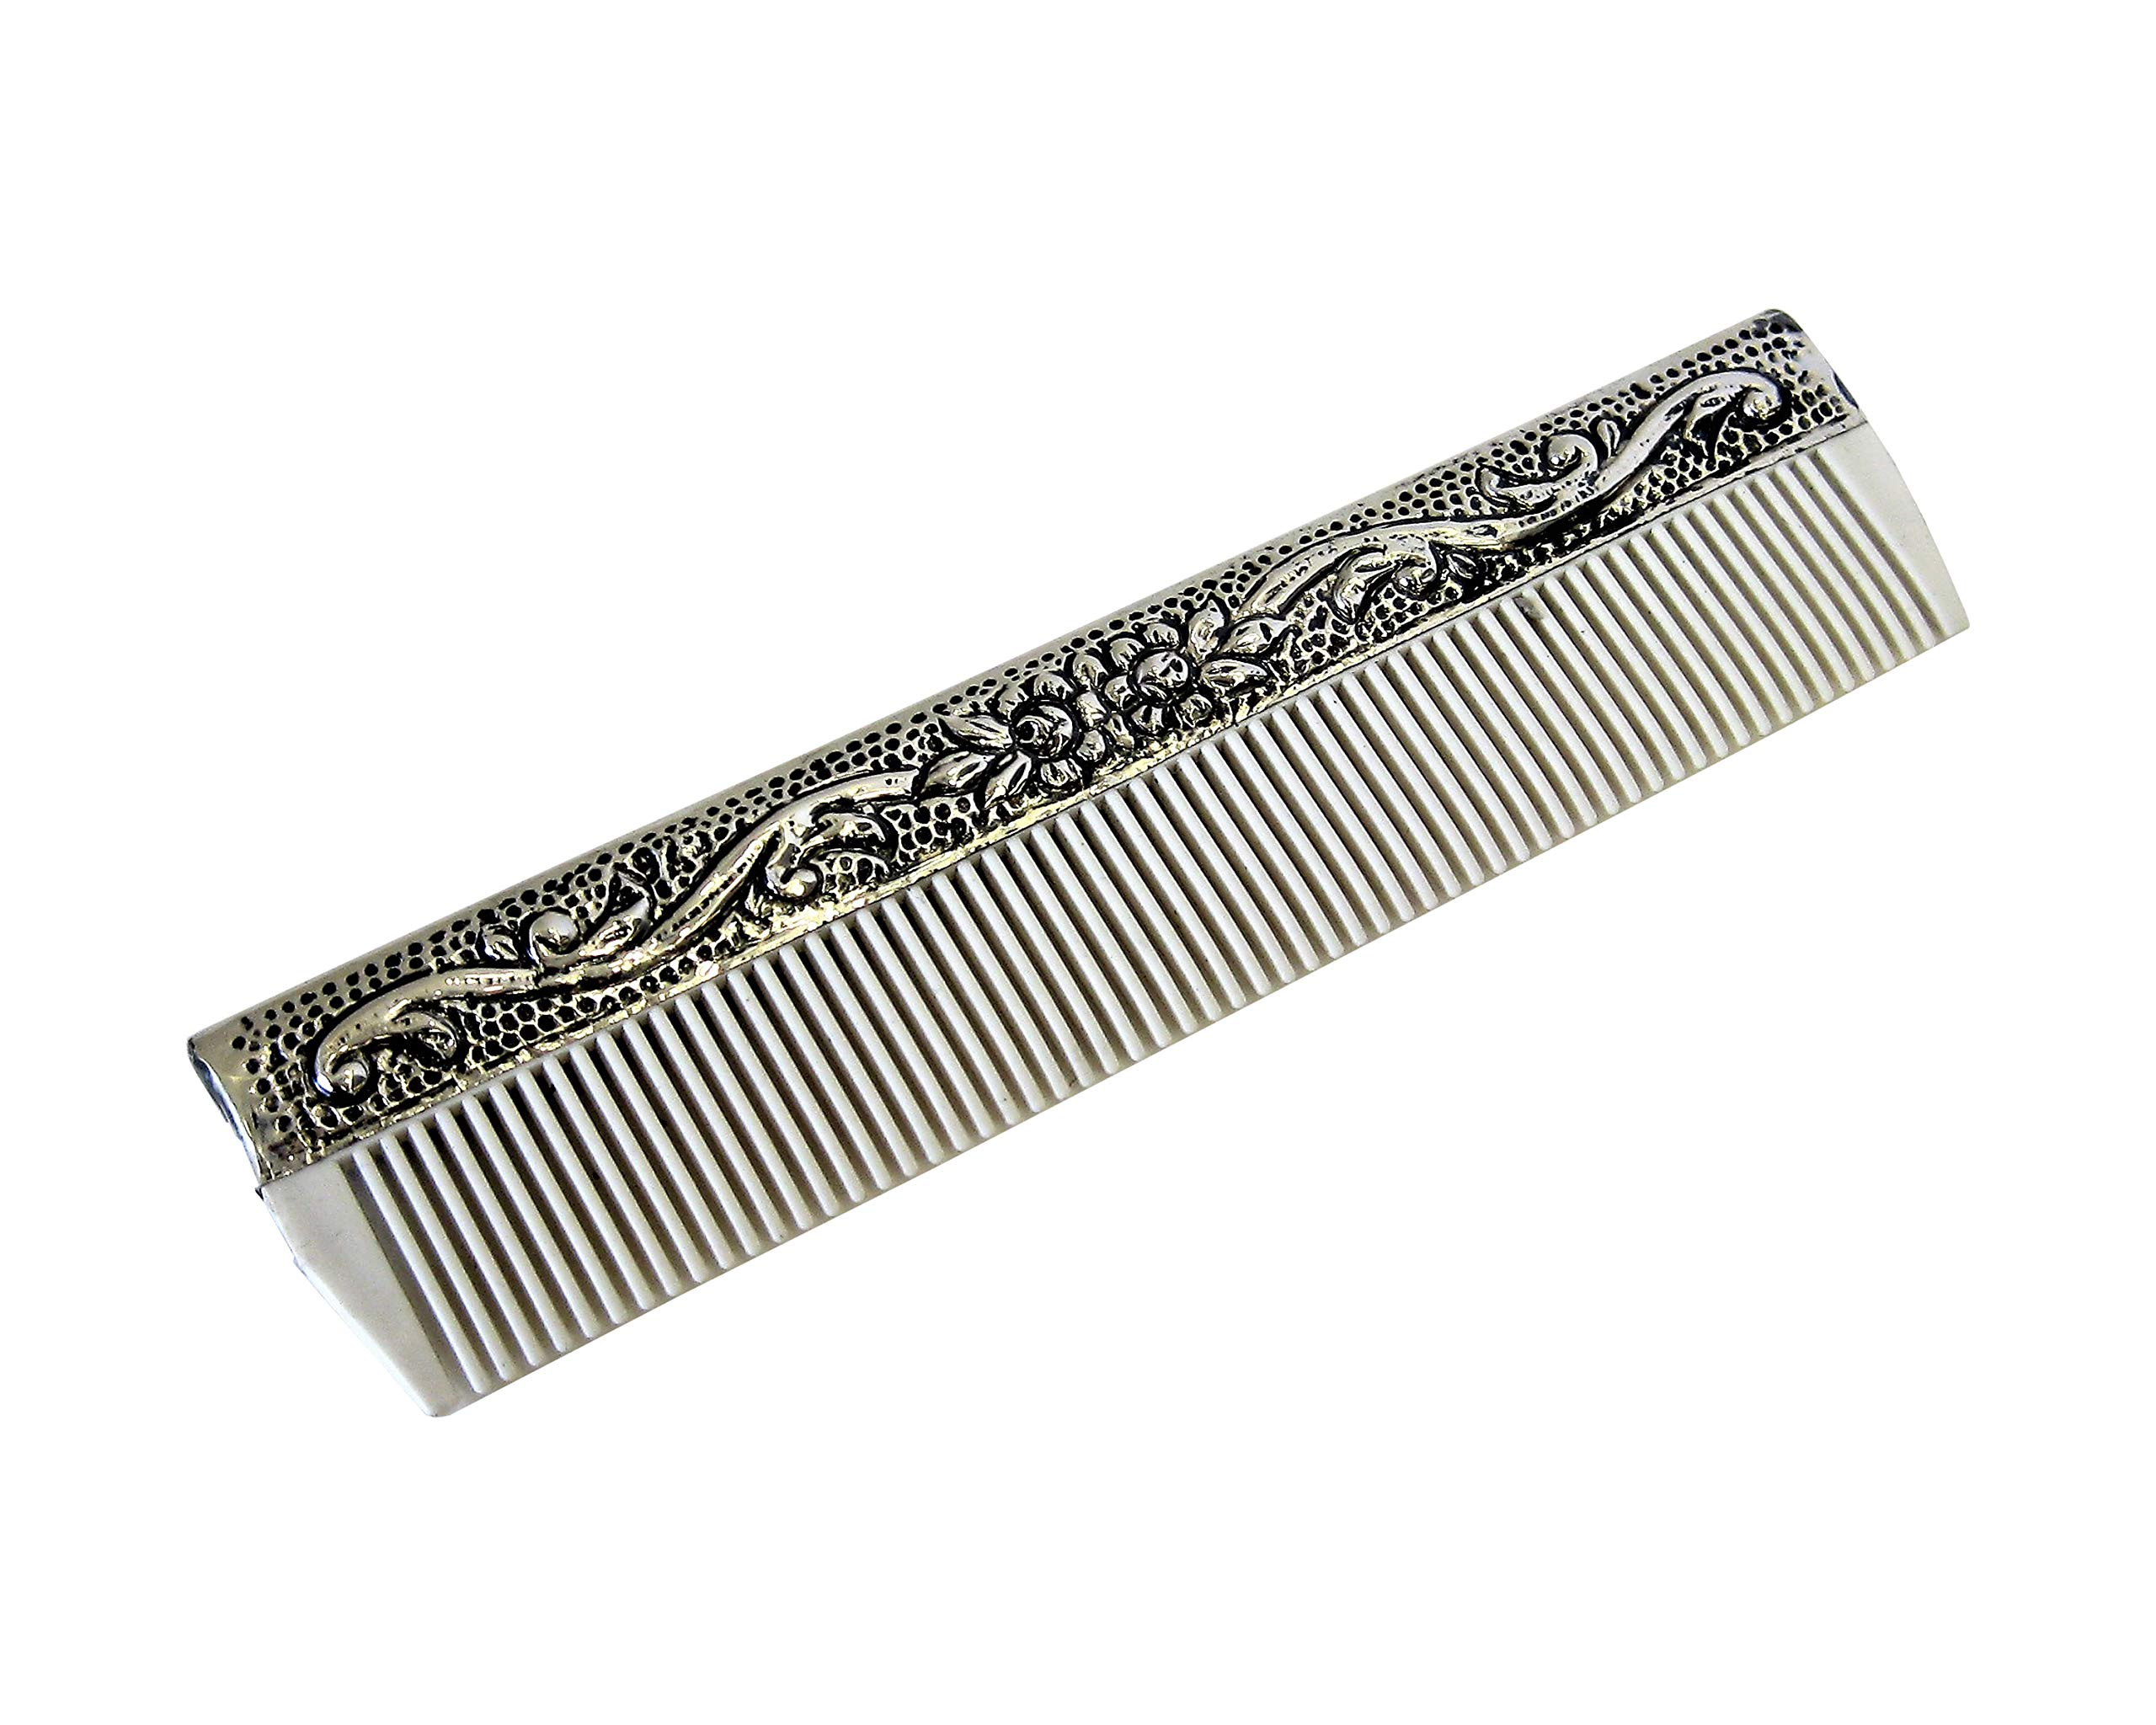 925 Sterling Silver Boy's Comb & Brush Set with Blue Felt Gift Box by Gelco (Image #2)